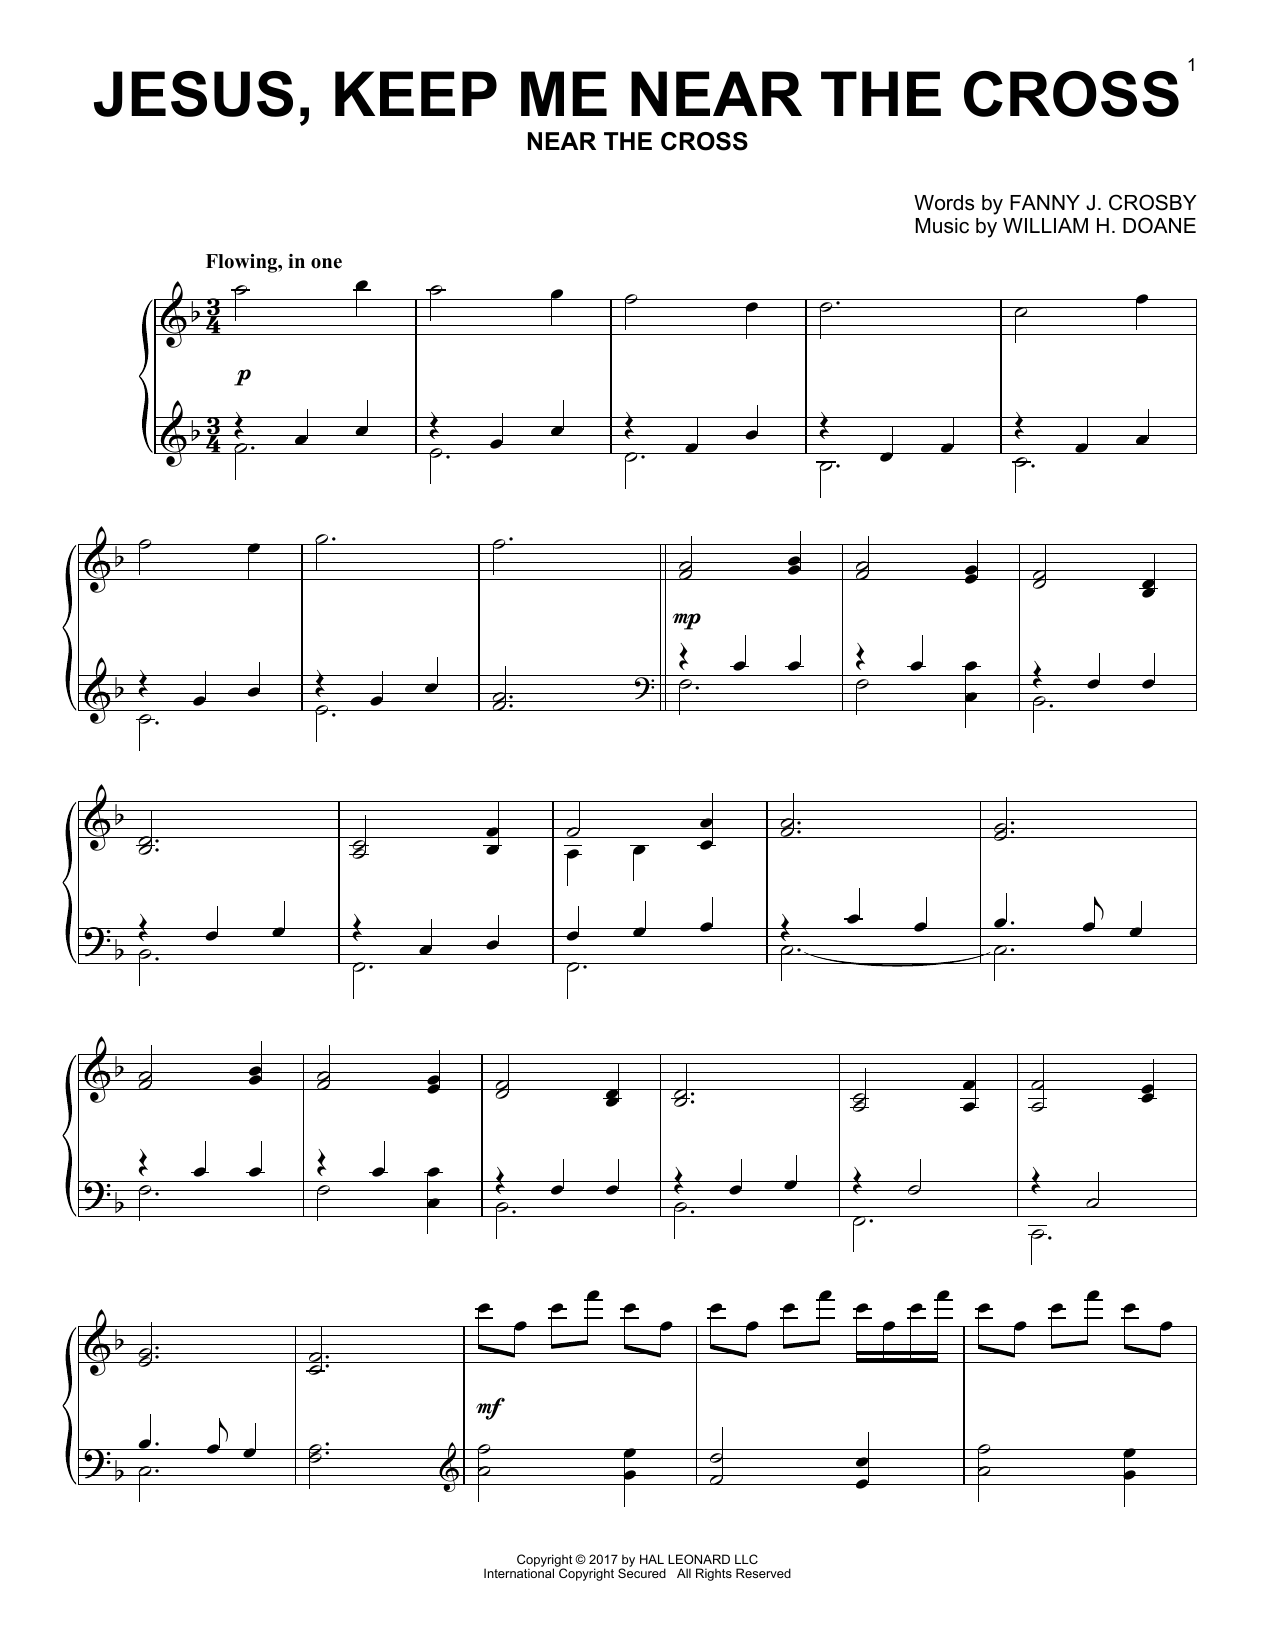 Sheet Music Digital Files To Print Licensed Fanny J Crosby